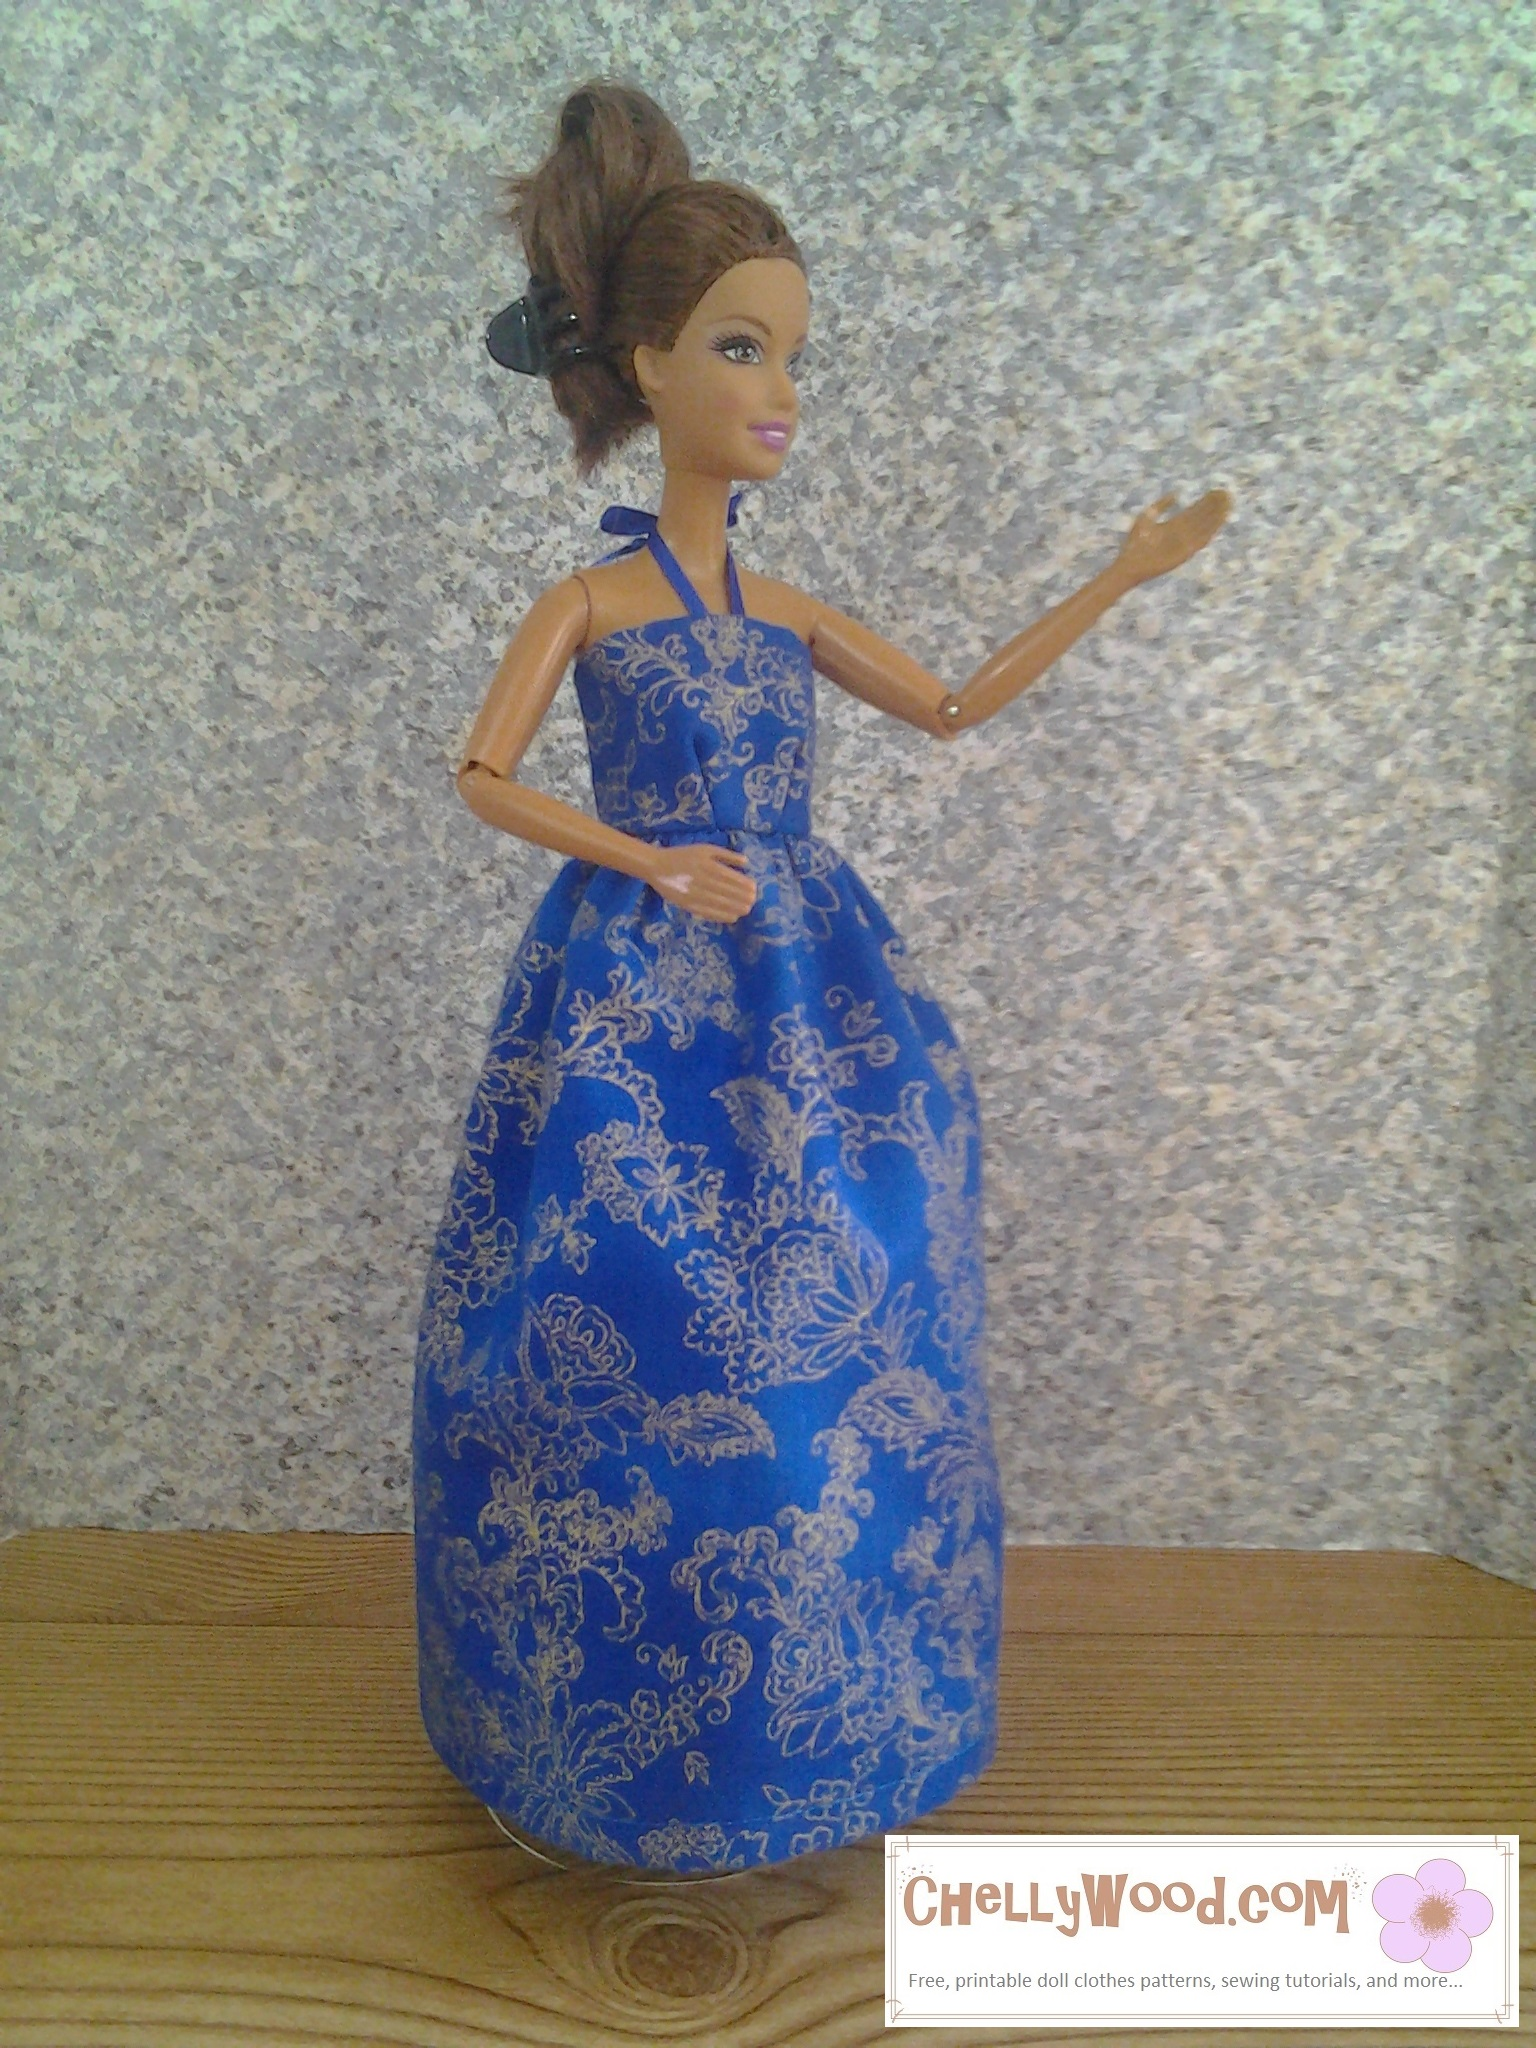 Here we see a Barbie wearing a handmade sun dress with a ribbon that ties around the neck to hold the bodice up. The dress is made of beautiful, vibrant blue fabric with floral embroidery or an embroidery-style print on the fabric. To get to the free pattern for making this dress, please click on the link in the caption.